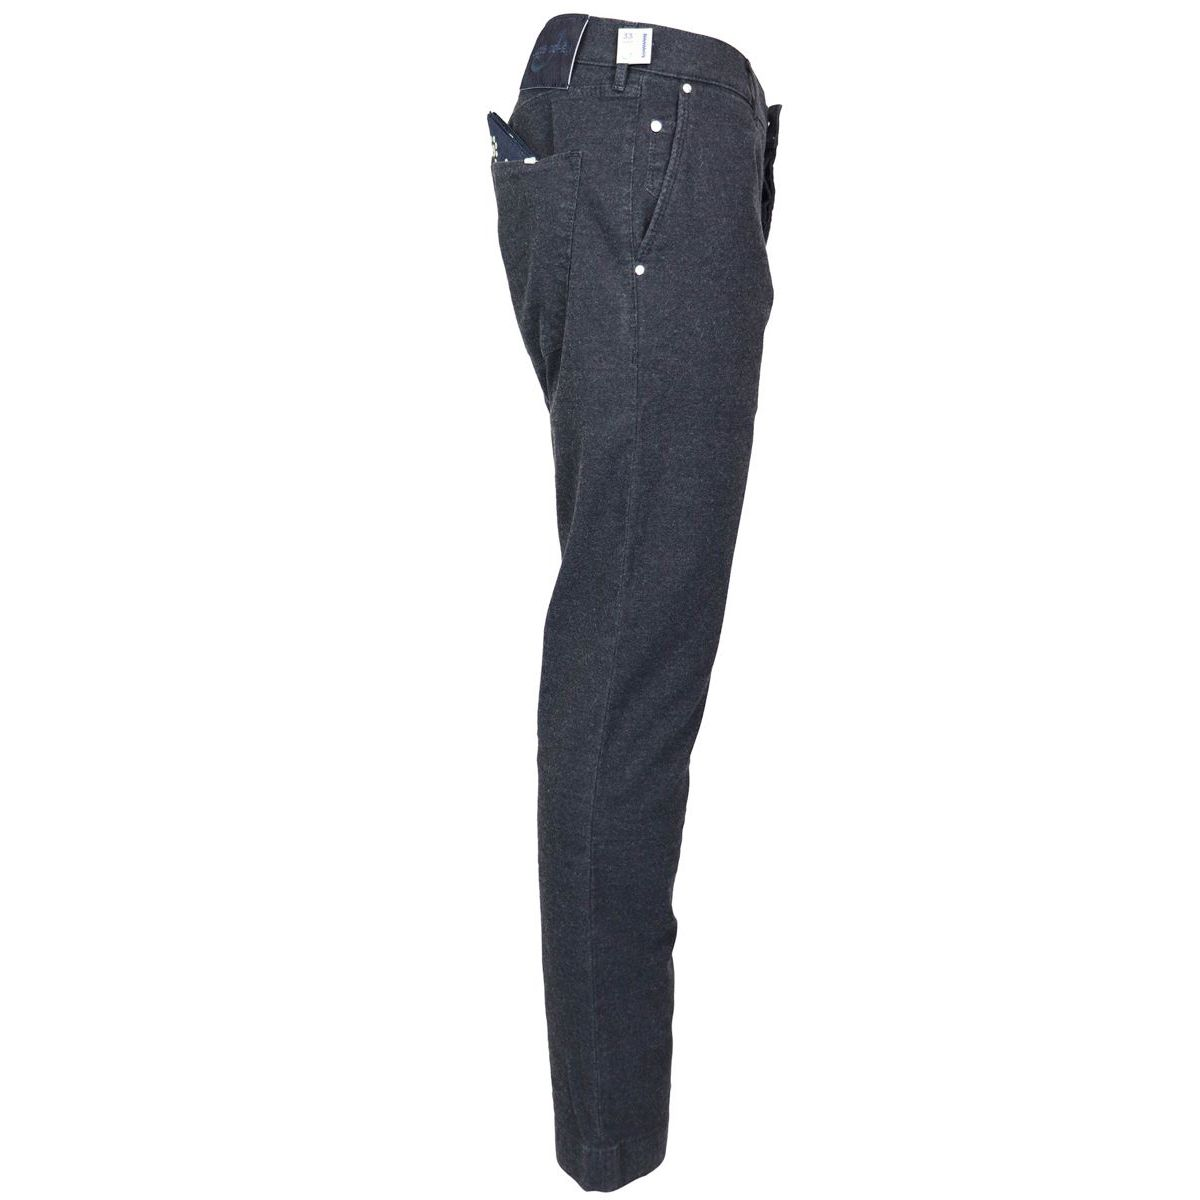 Elasticated trousers pocket america J676 COMF 01719 Blue / black Jacob Cohen